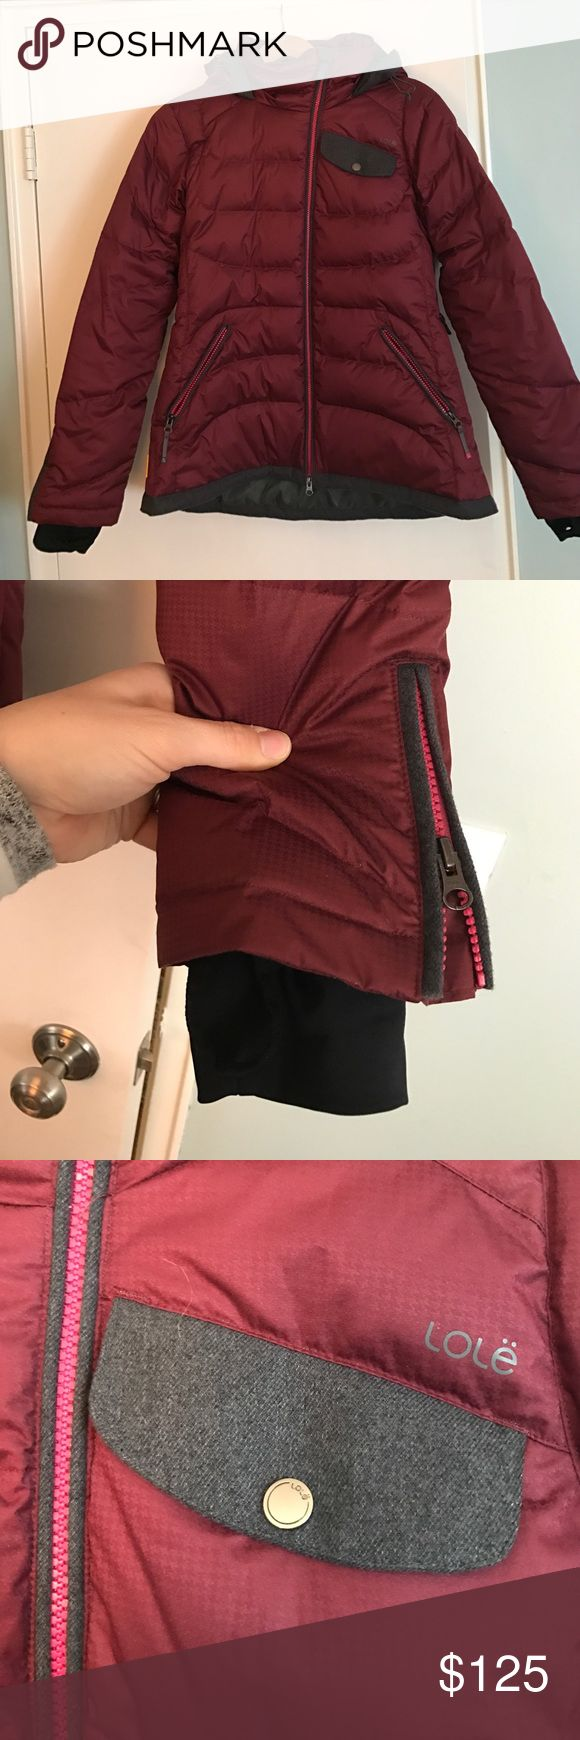 NWOT Lole Winter Jacket, Burgundy, Large Adorable Lole jacket!  This jacket has all the bells and whistles - thumbholes, slight zip at wrist, attached hood with adjustable drawstring, 2 front pockets, powder skirt, 2 internal pockets.  Jacket is waterproof.  Outer shell is 100% polyester with 60% duck down and 40% feathers.  It's warm! Lole Jackets & Coats Puffers